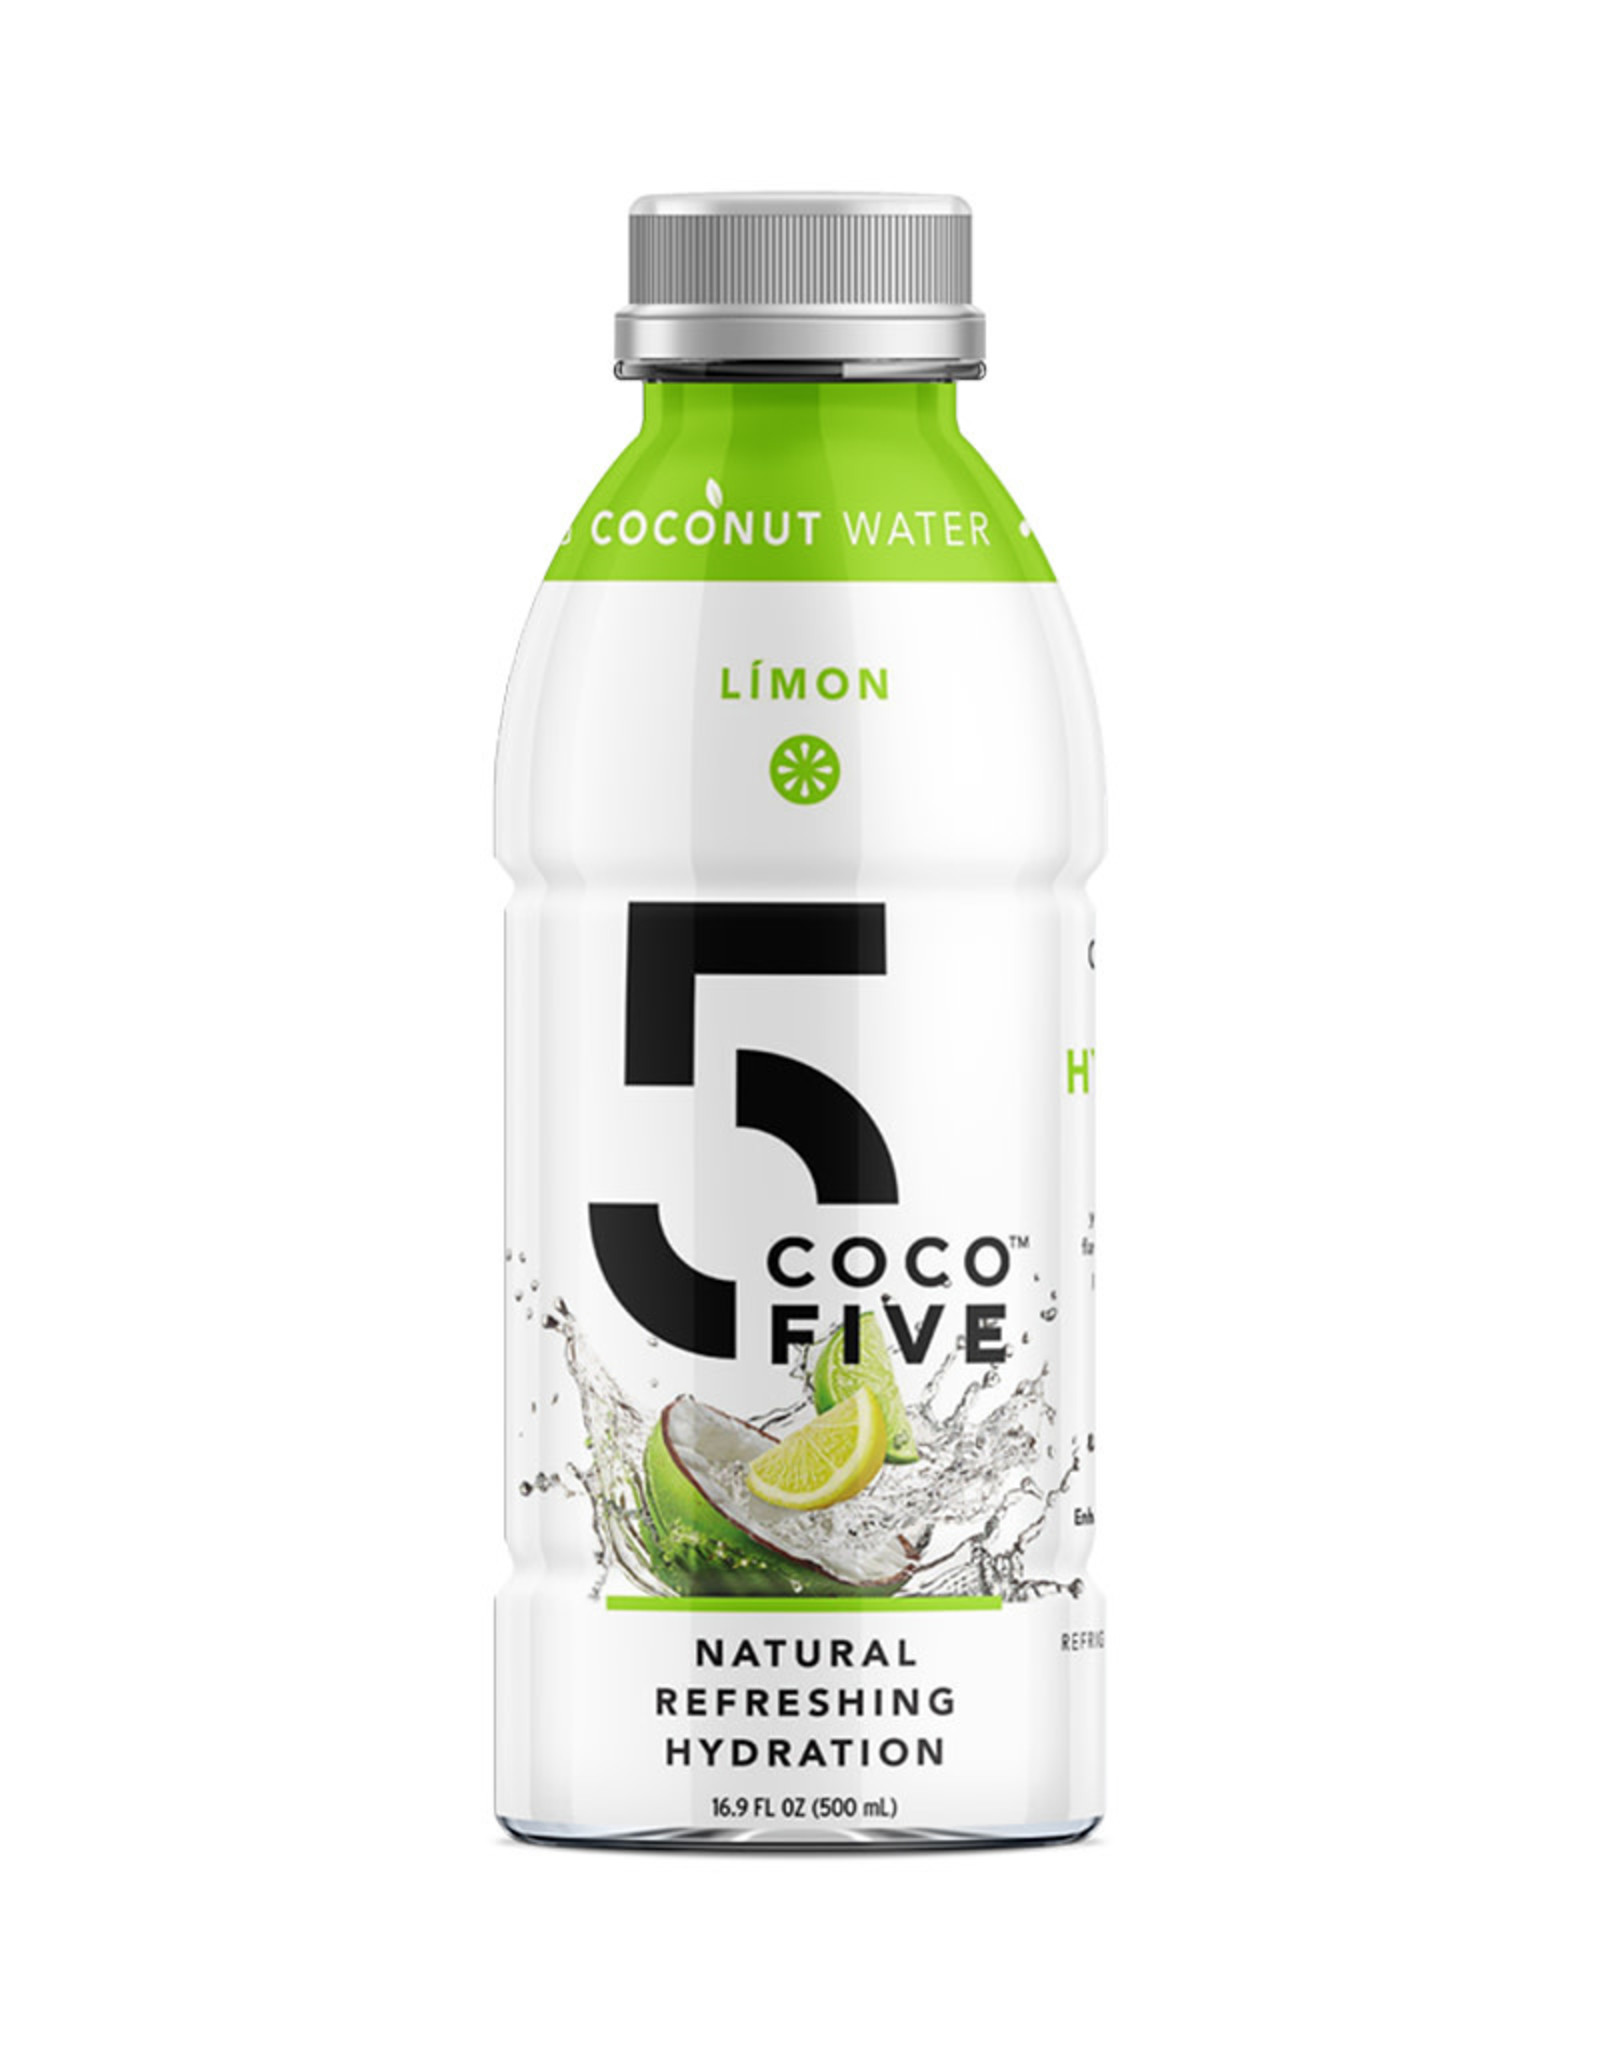 Coco5 Coco5 - Coconut Water, Limon (500ml)